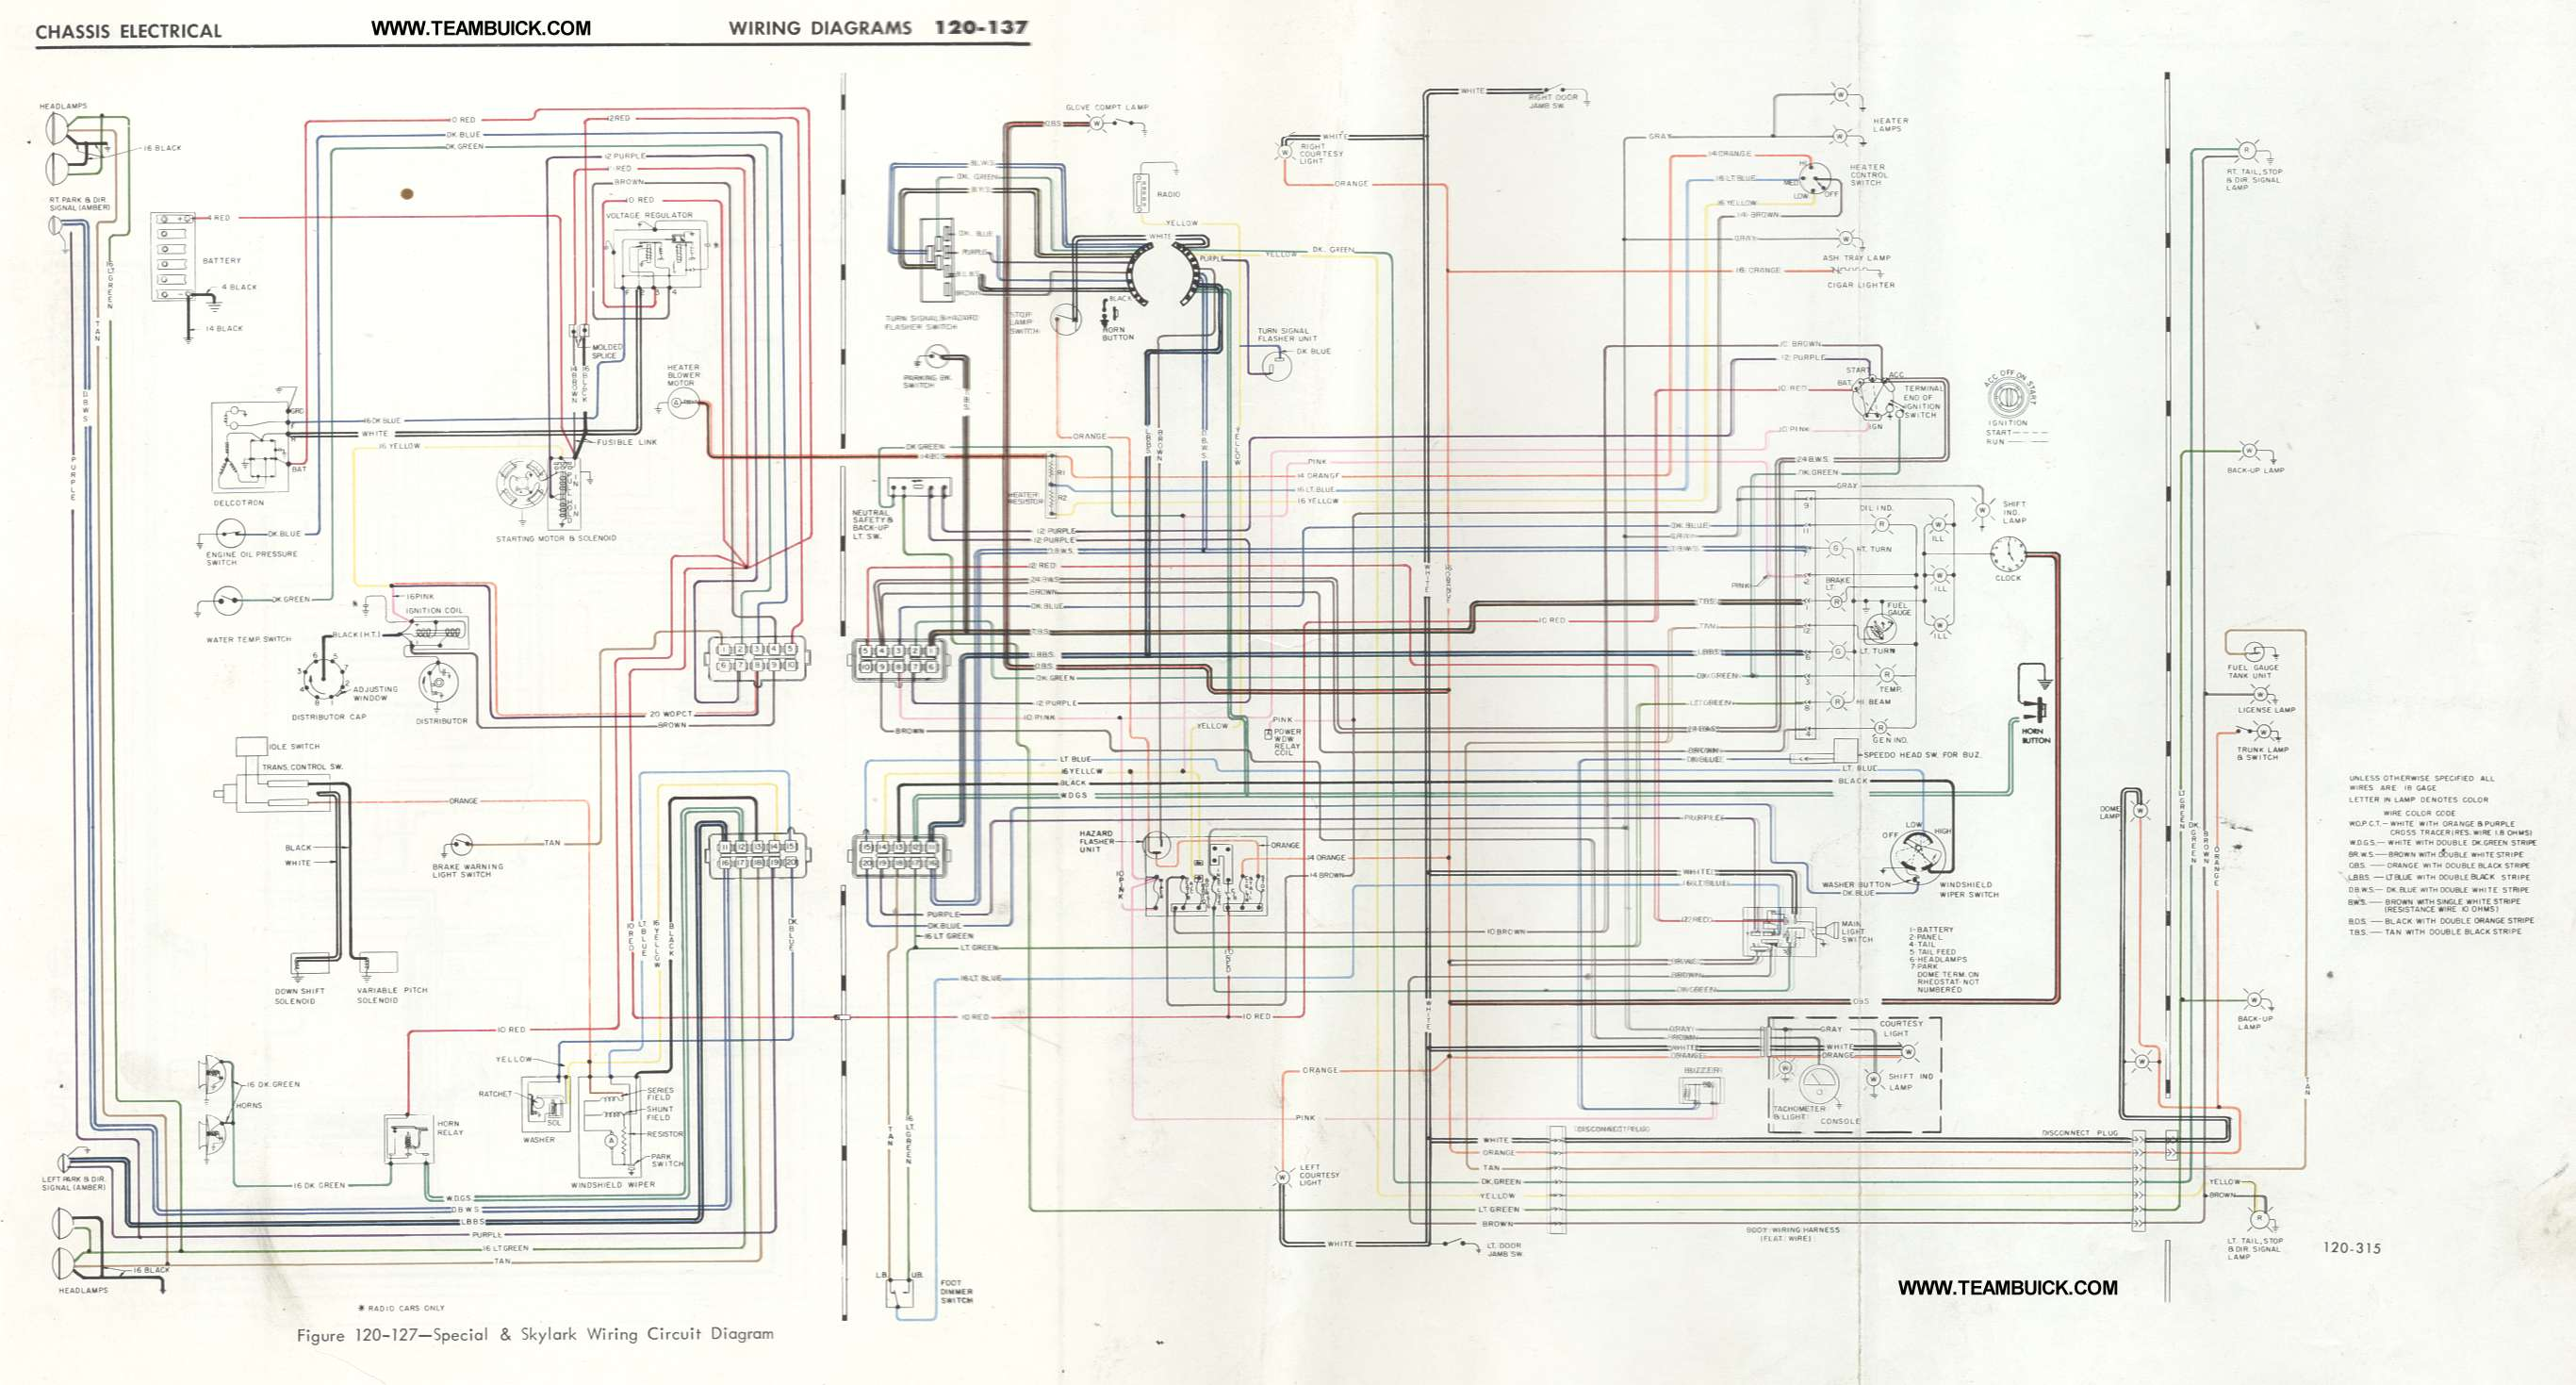 1967 buick special wiring diagram 1965 buick skylark ignition 1967 Pontiac Tempest Wiring Diagram right click to save to your computer 1967 buick special skylark gs400 wiring diagram